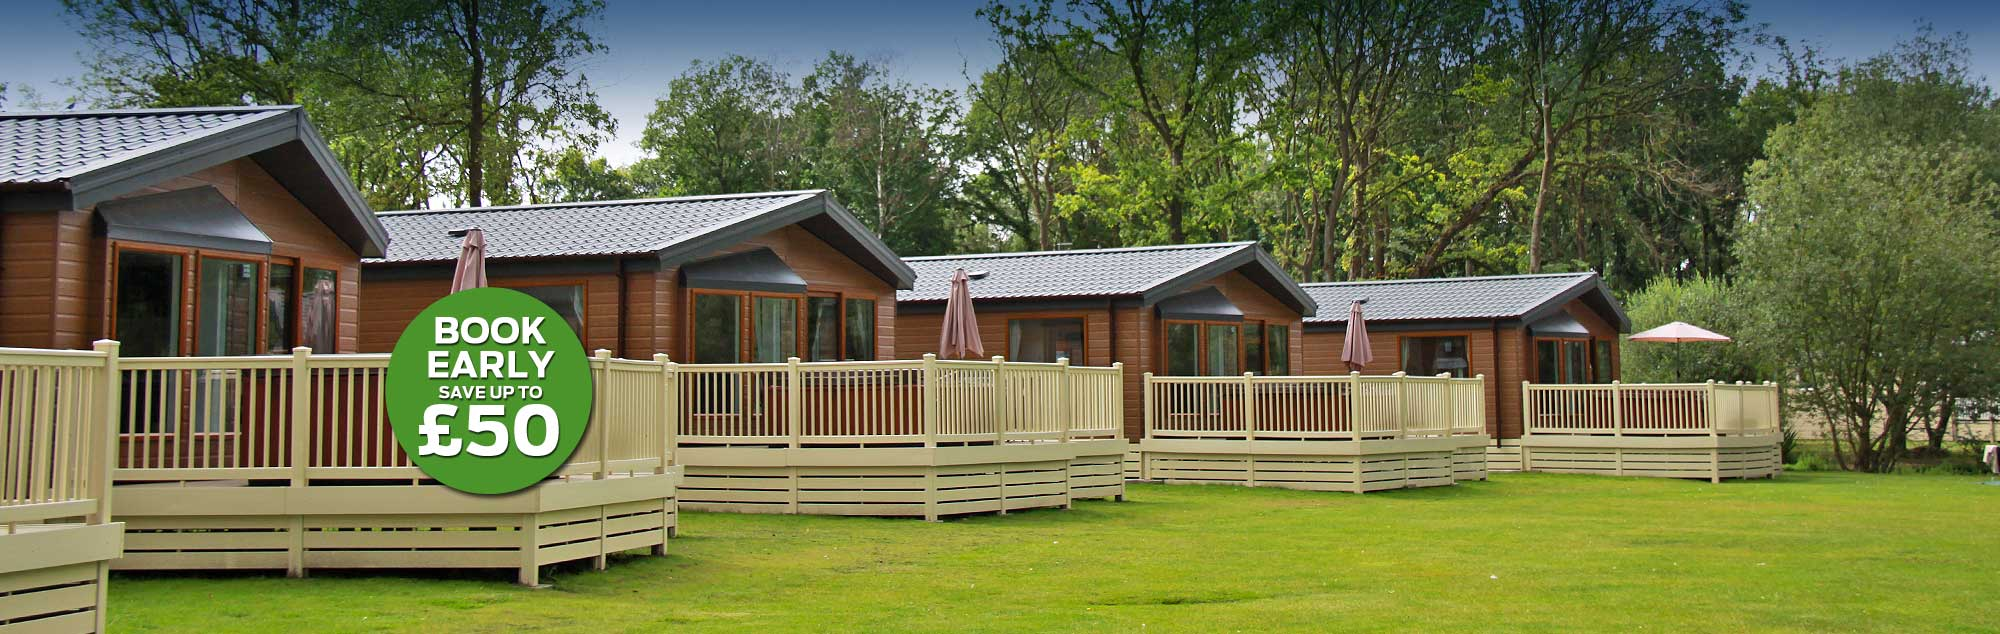 Lodge holidays in York - Save up to £50